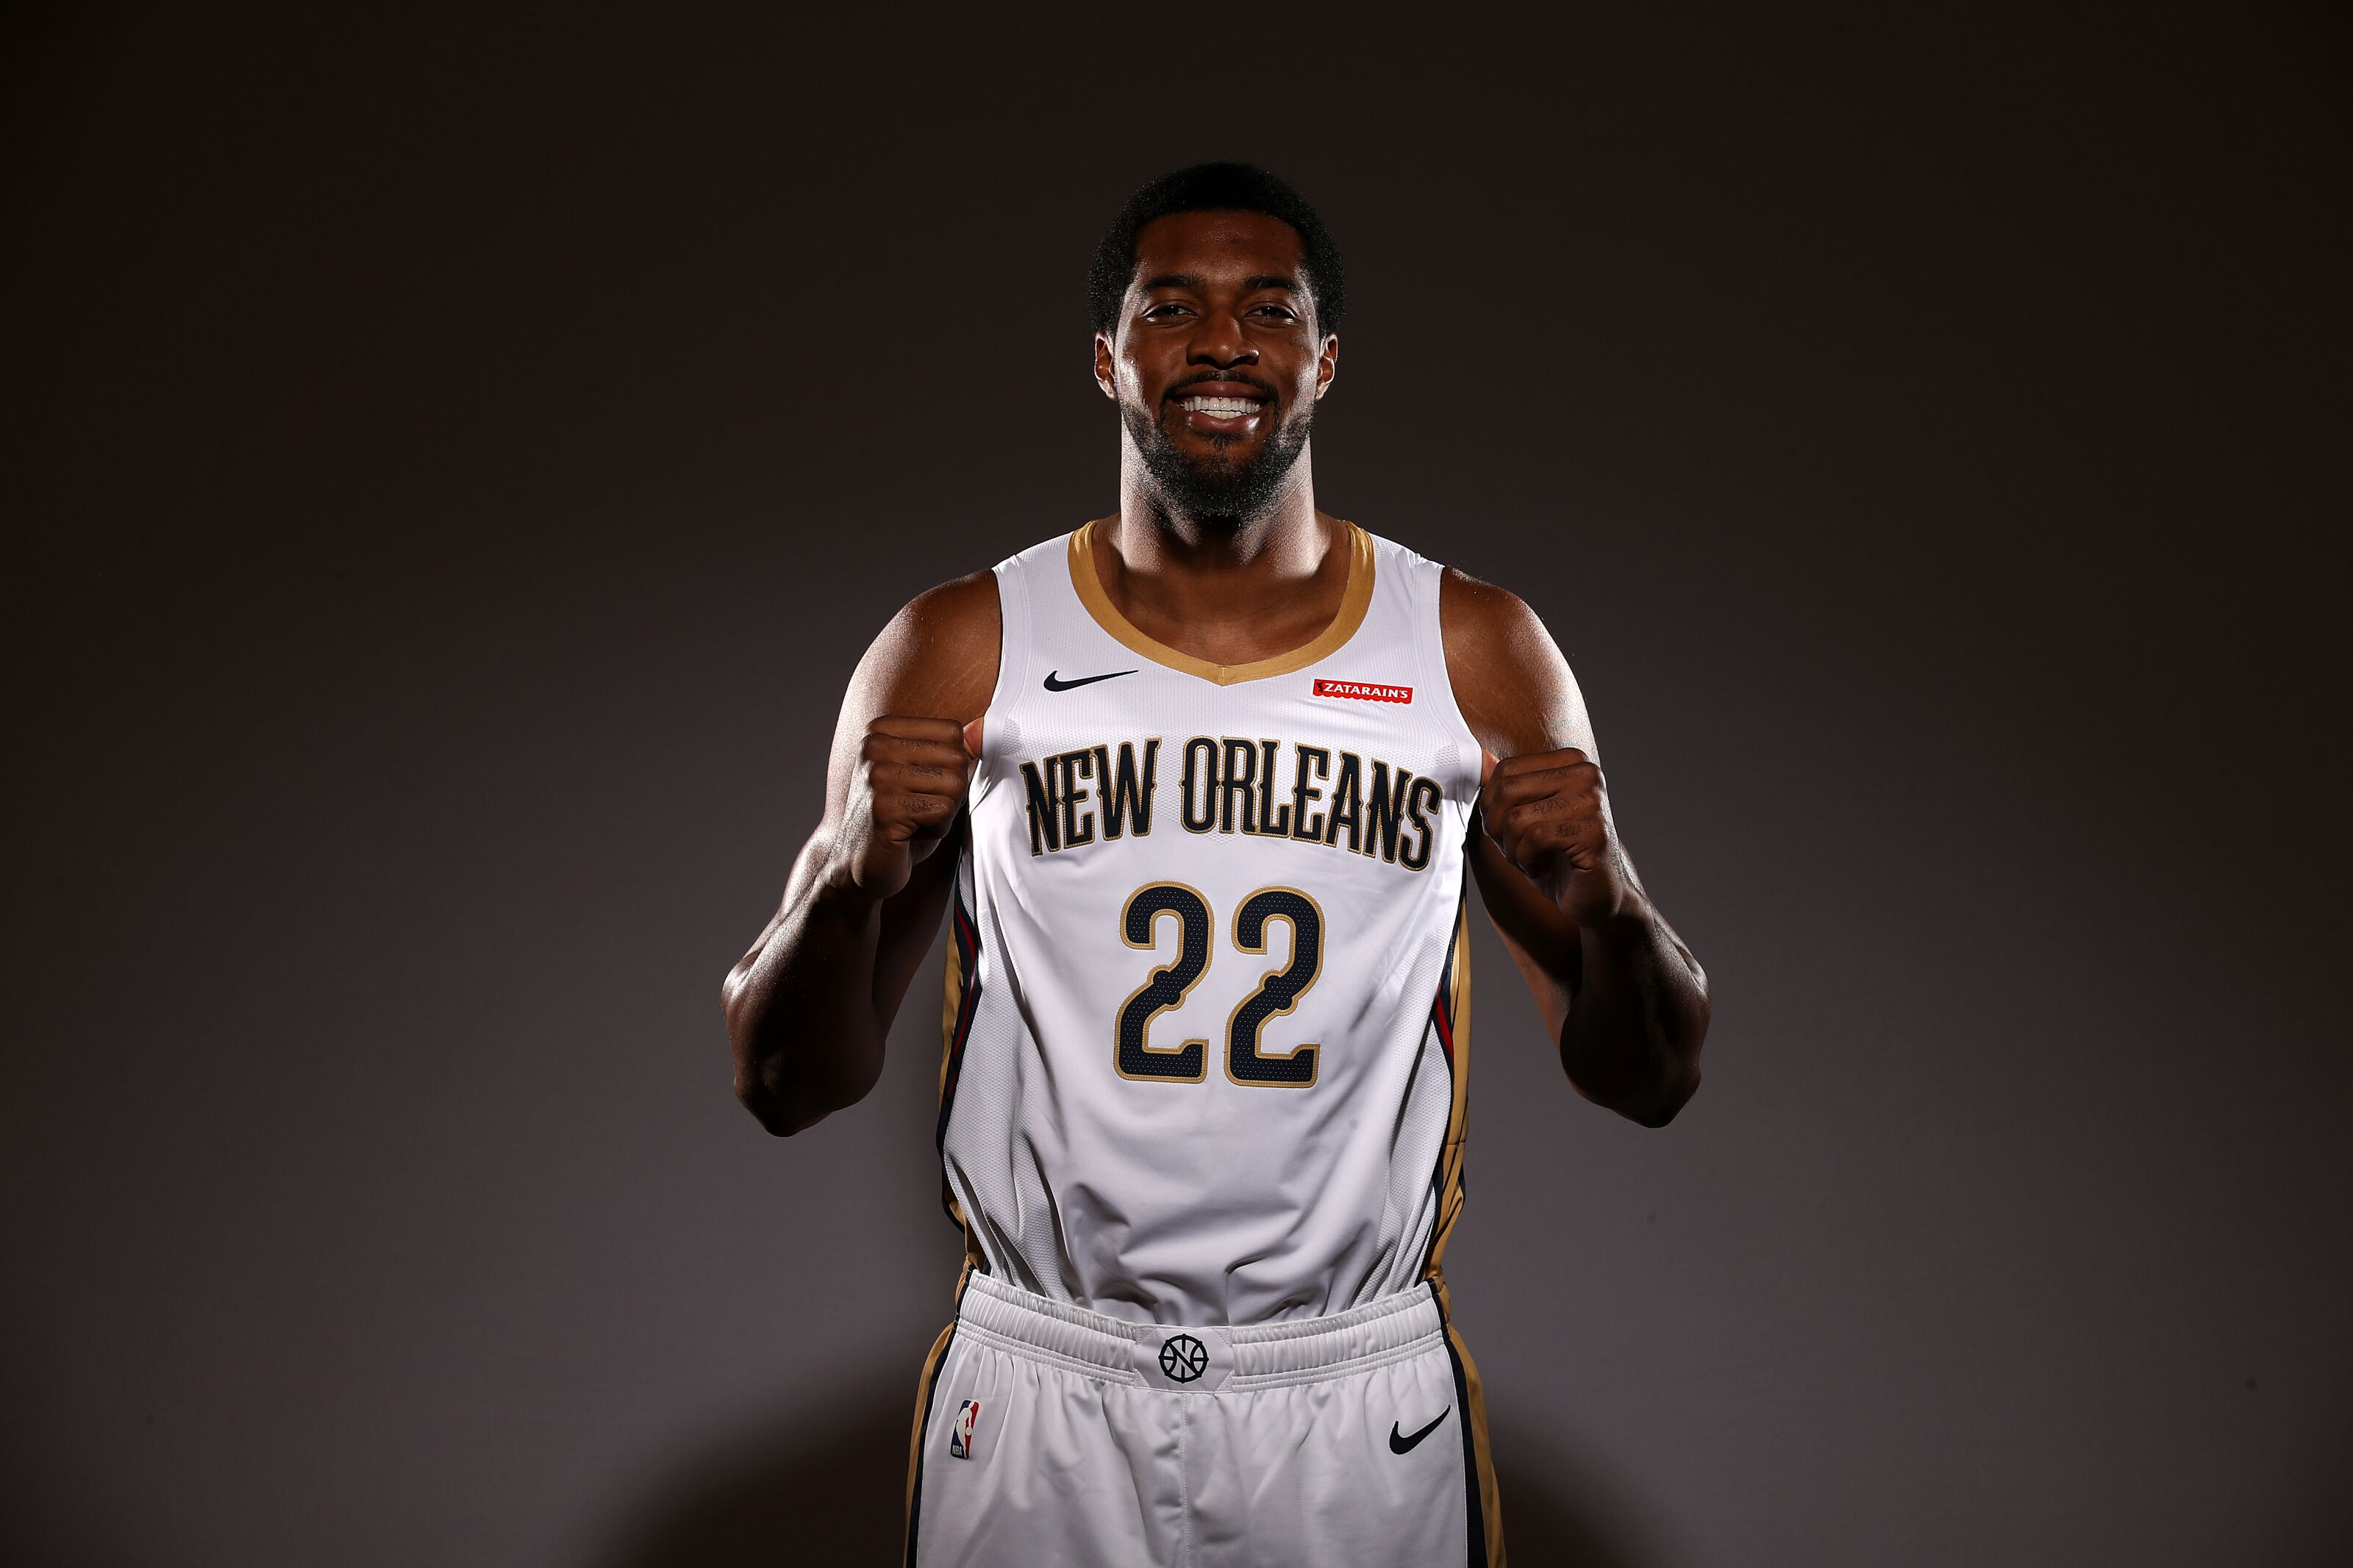 Utah Jazz editorial: Favors in a Pels jersey felt like a bad trip